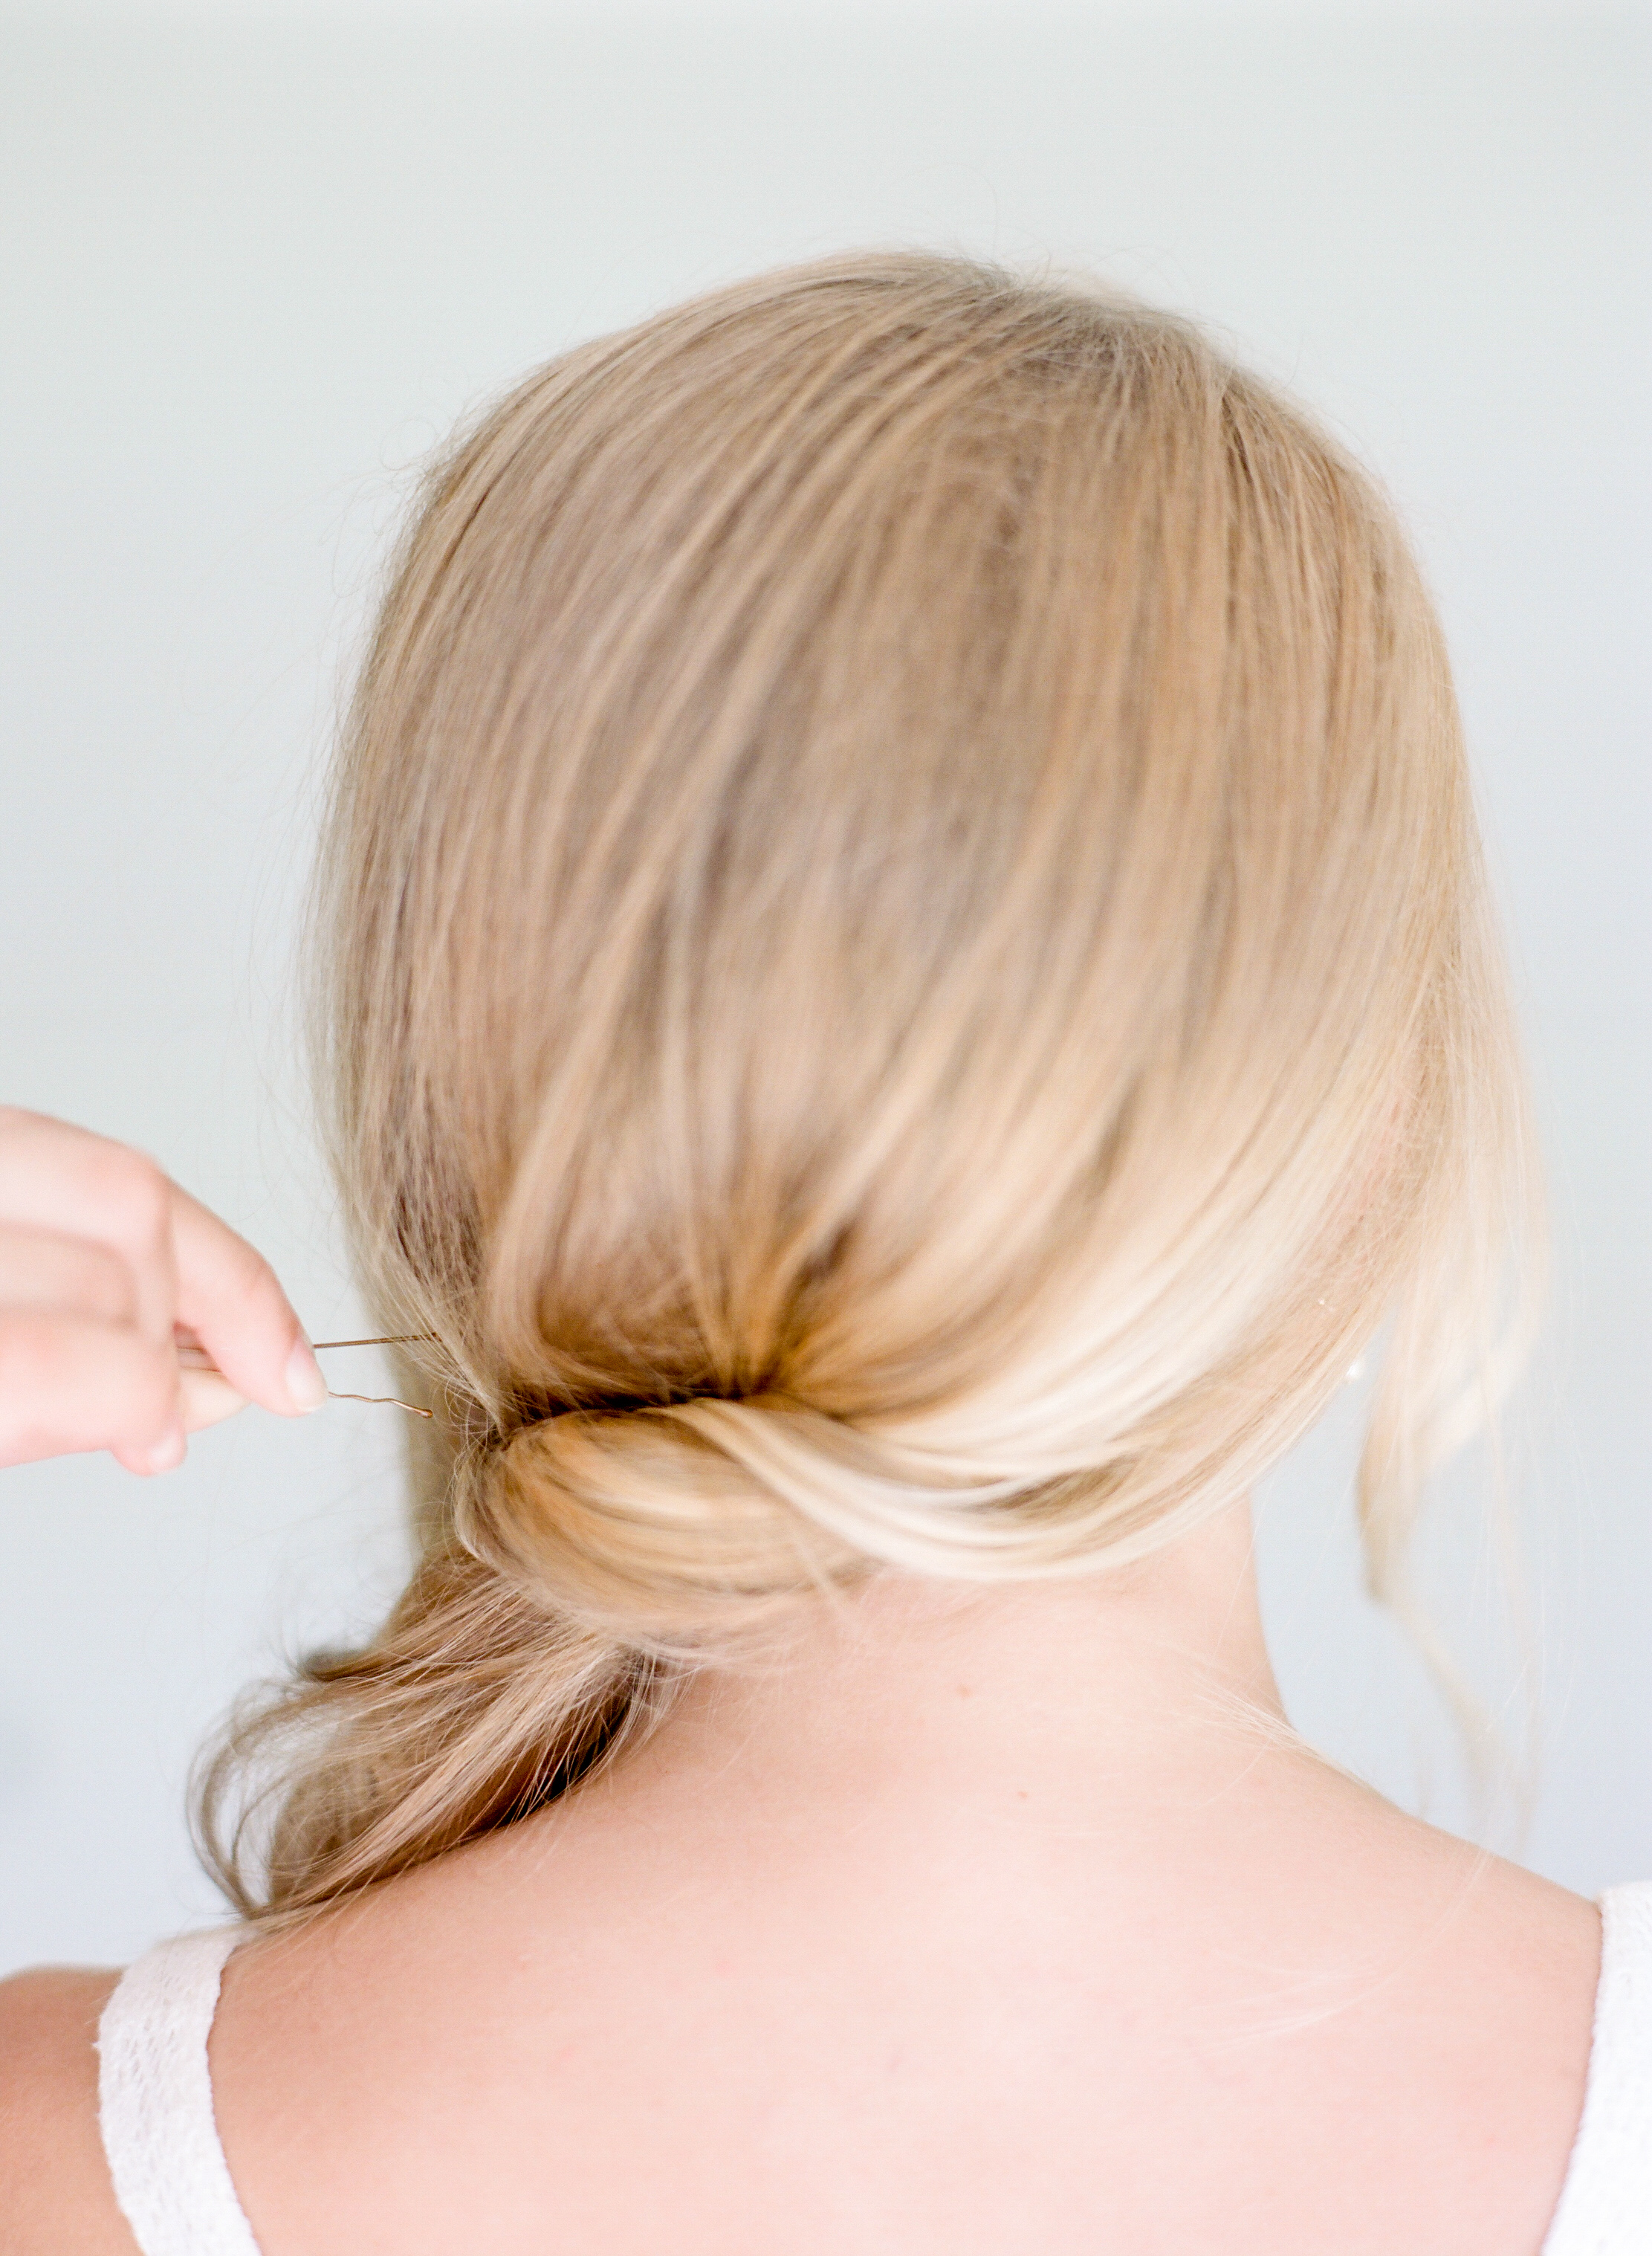 STEP TWO | Sweep hair to one side twisting from the bottom